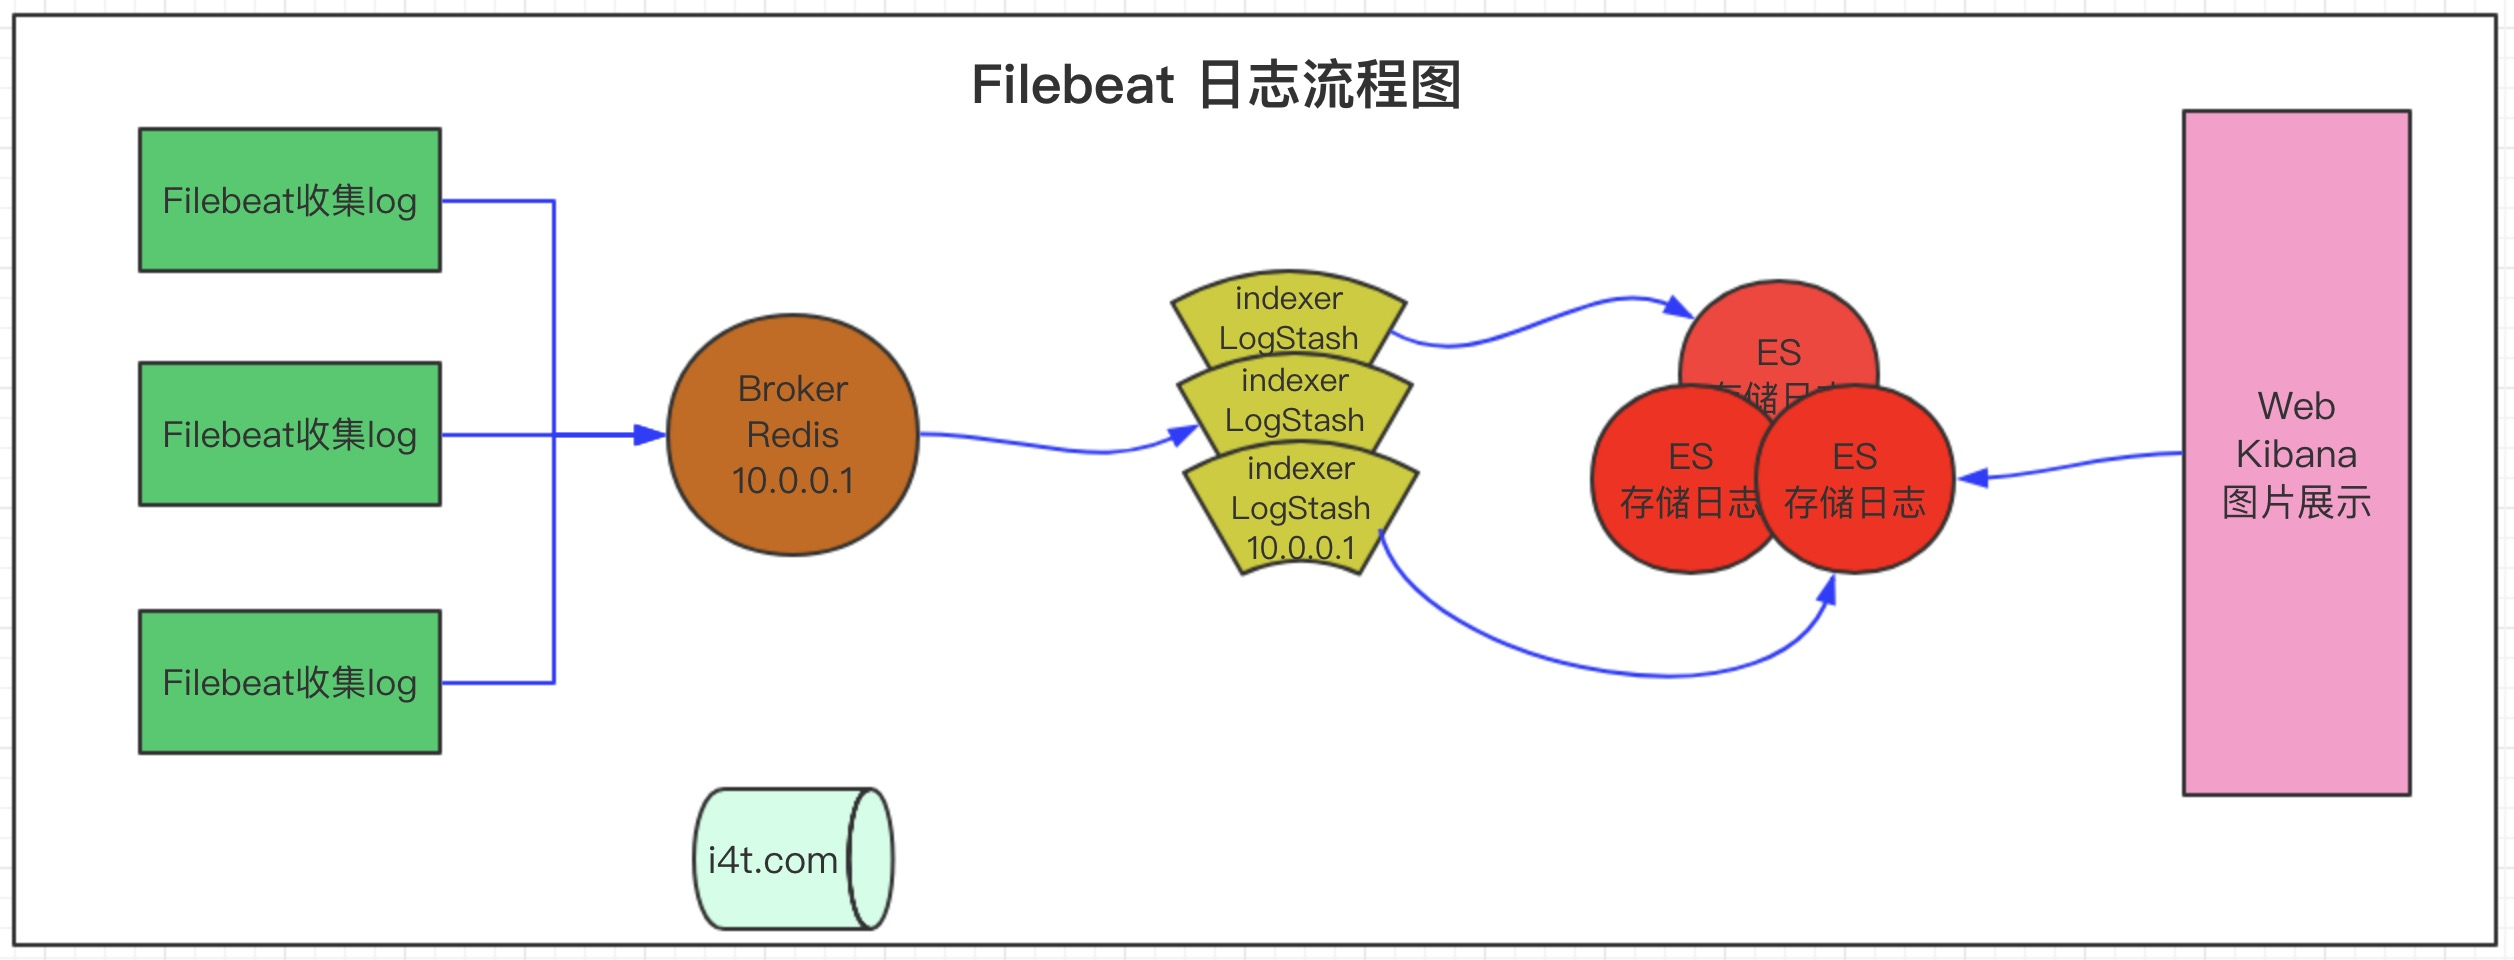 filebeat.png-197.6kB